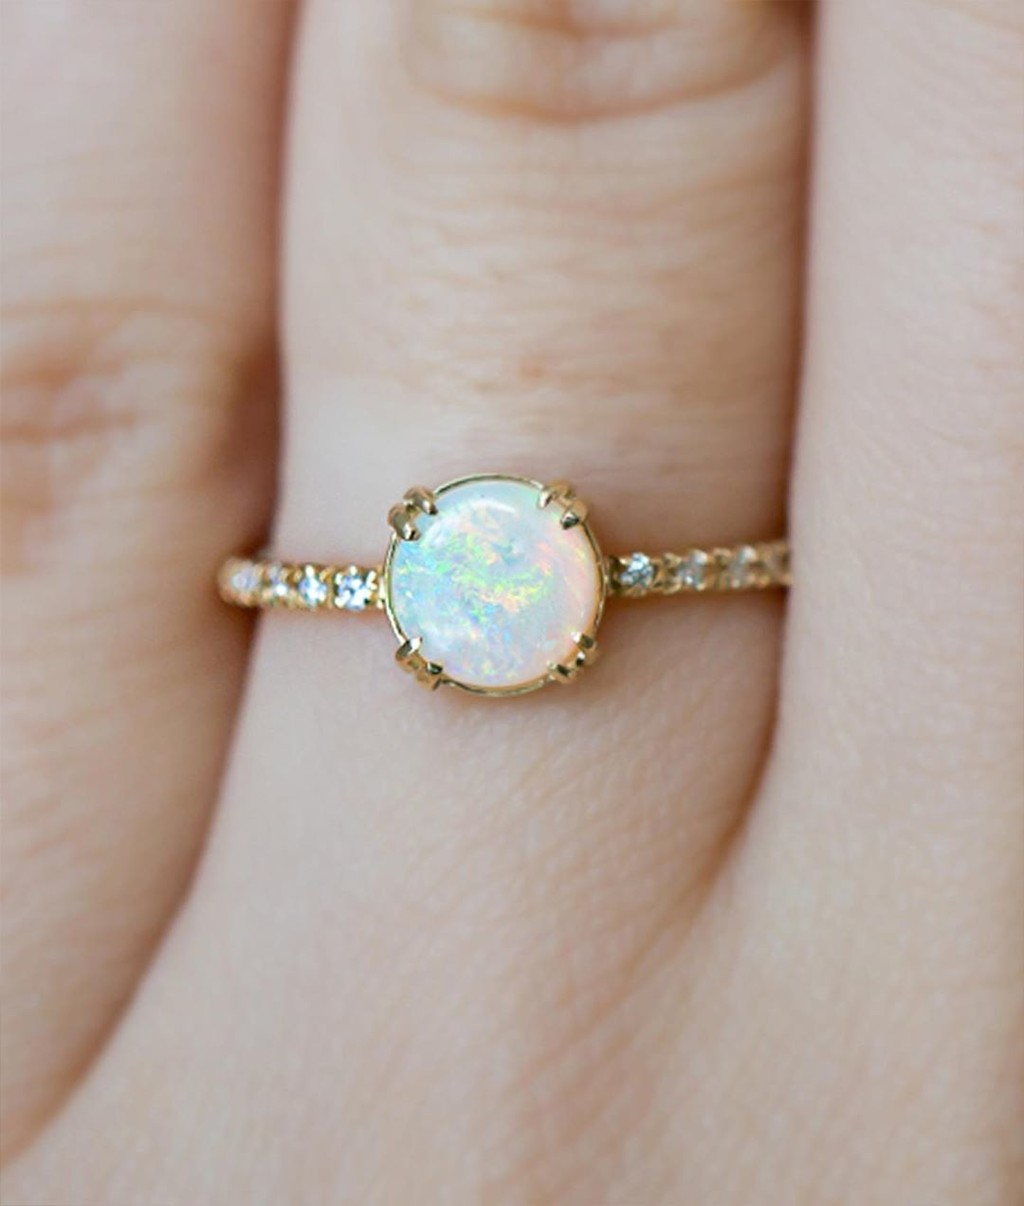 🌈 Natural 6mm Round Australian Opal in Recycled Gold with Canadian Mined diamonds! Feeling Colorful Springtime Vibes today! Link